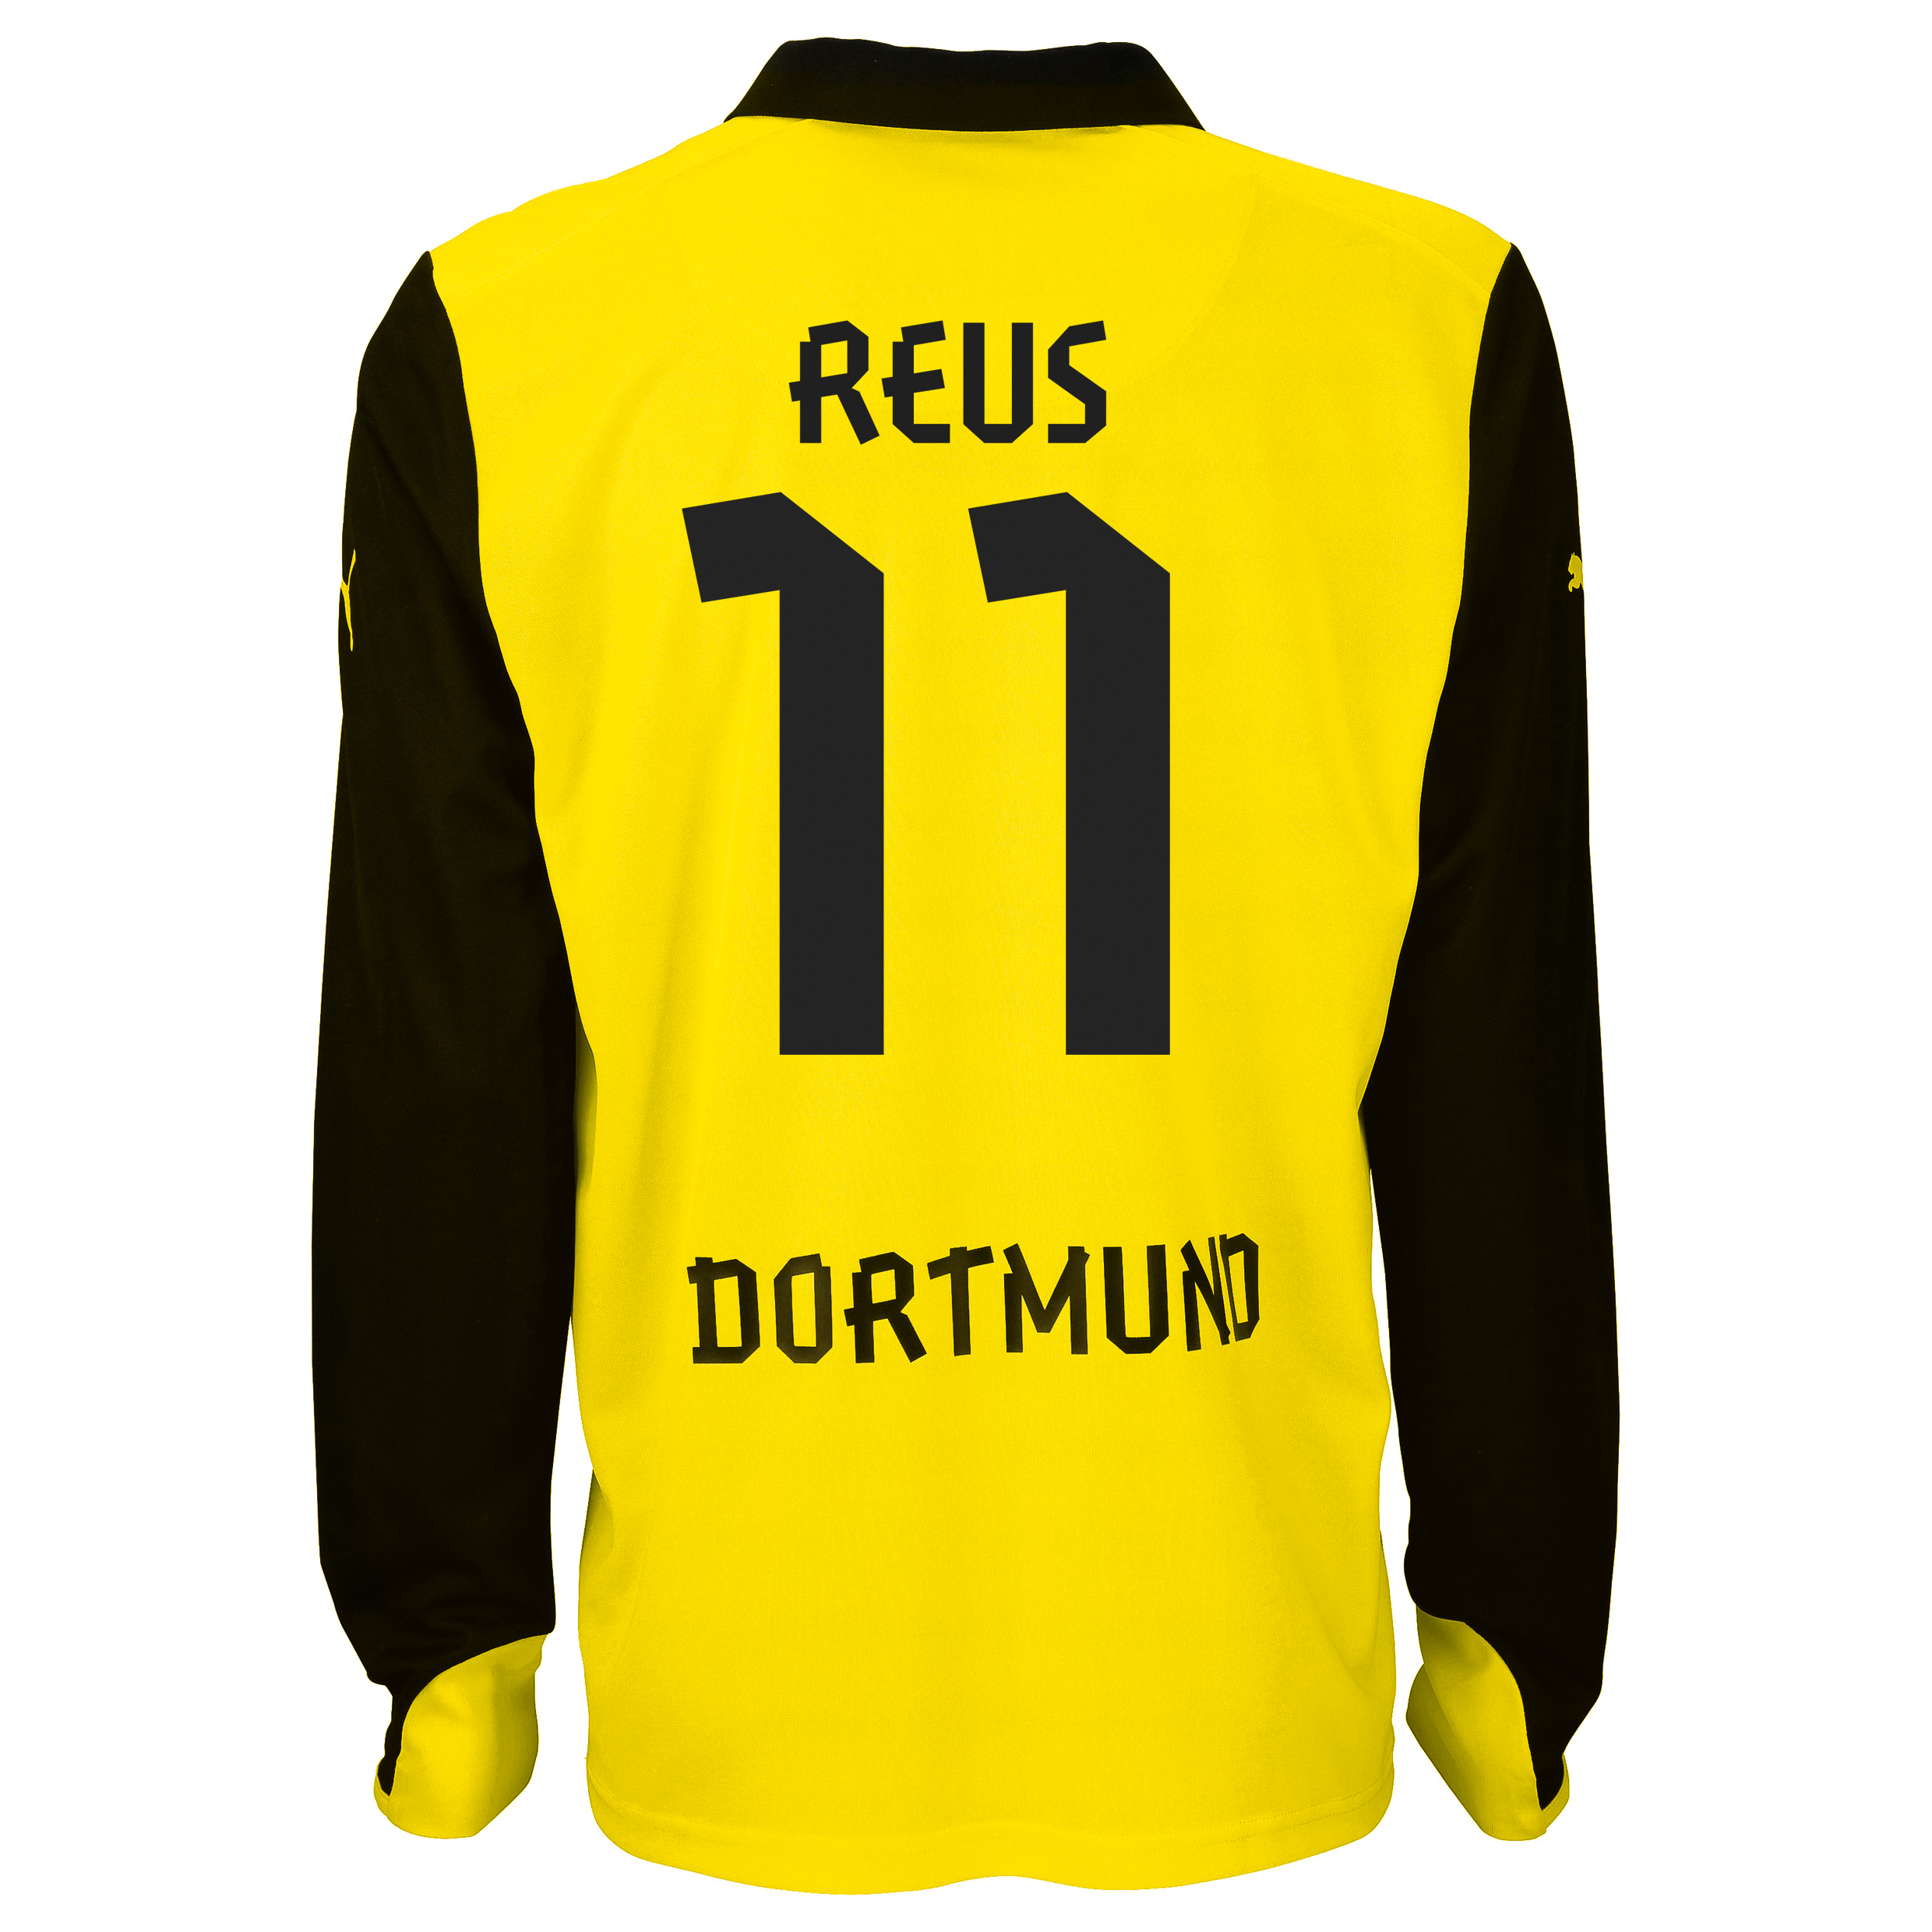 BVB International Home Shirt 2013/14 - Long Sleeve with Reus 11 printing